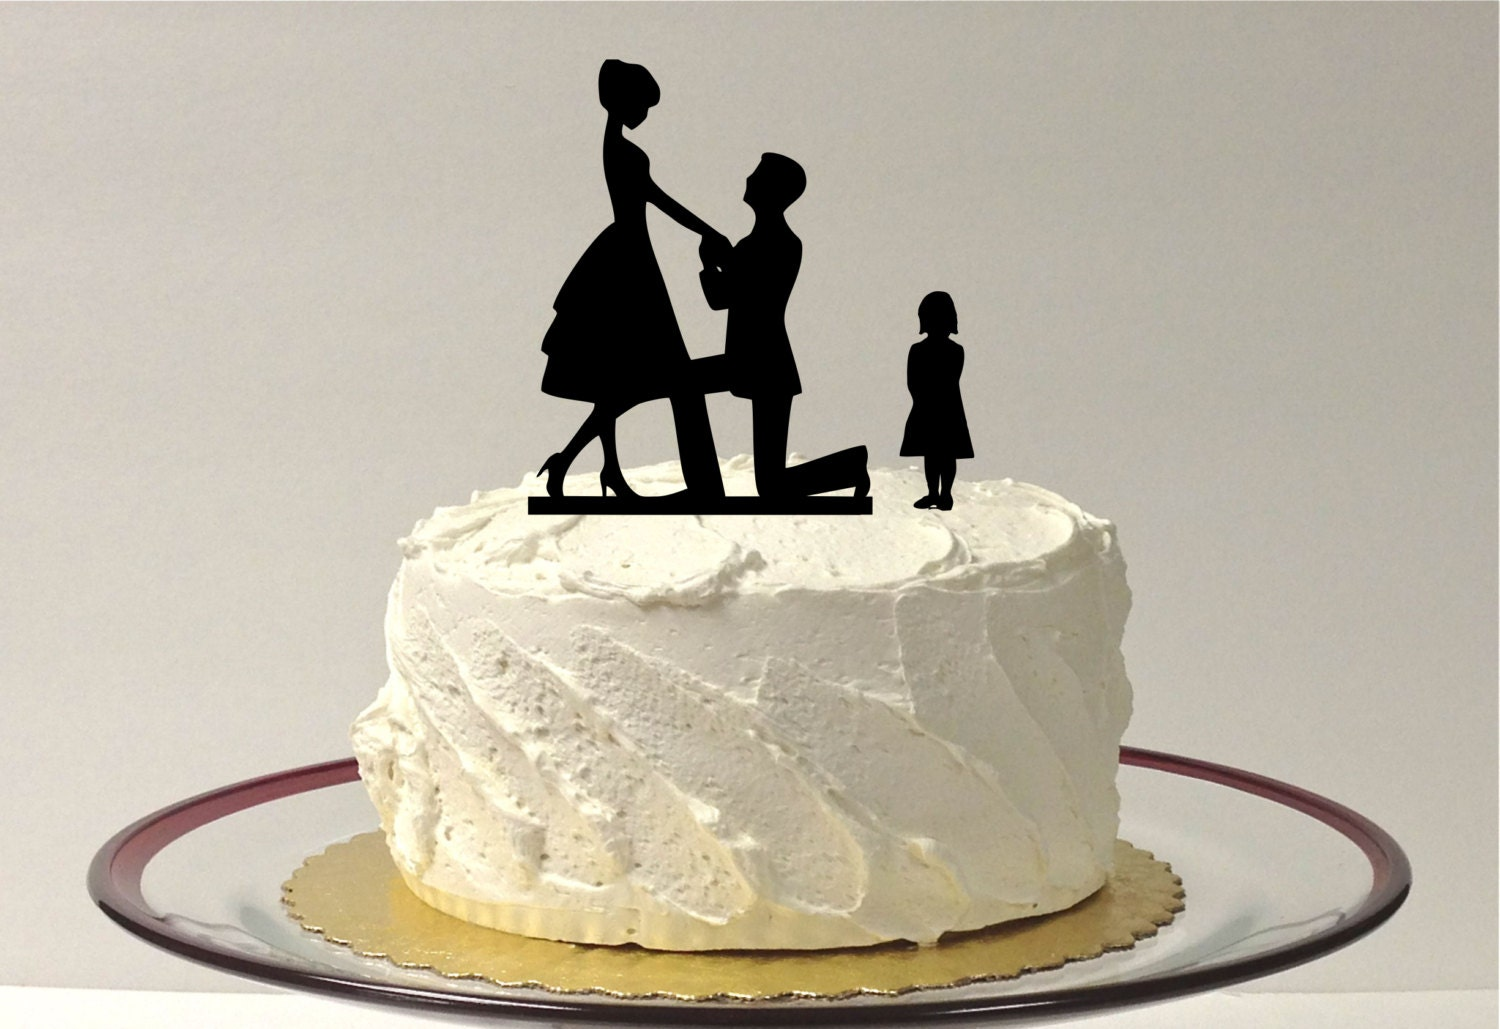 silhouette wedding cakes ideas engagement cake topper groom child silhouette 19823